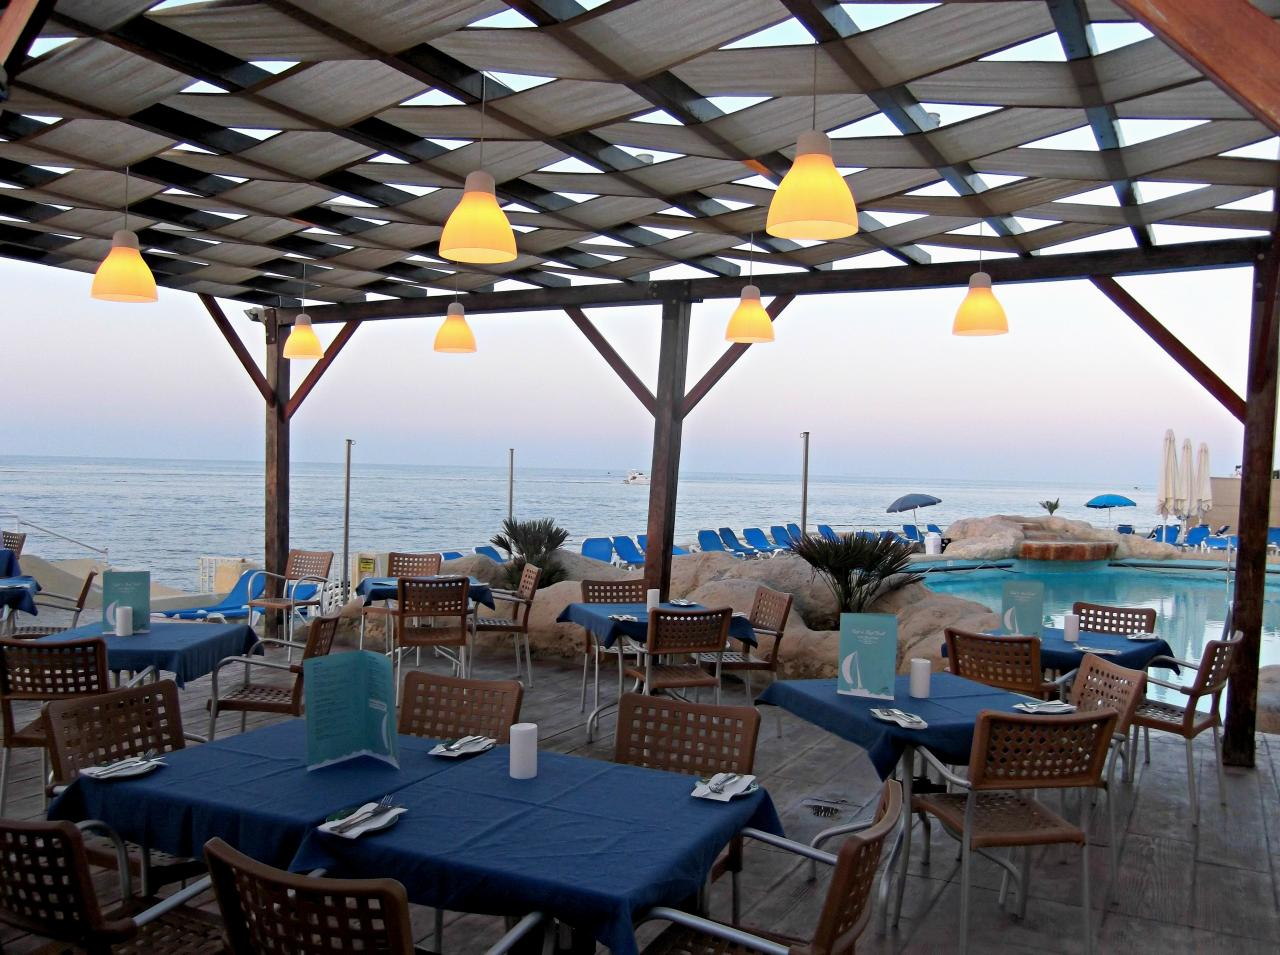 Surf & Turf at The Preluna Beach Club (Open July to September)